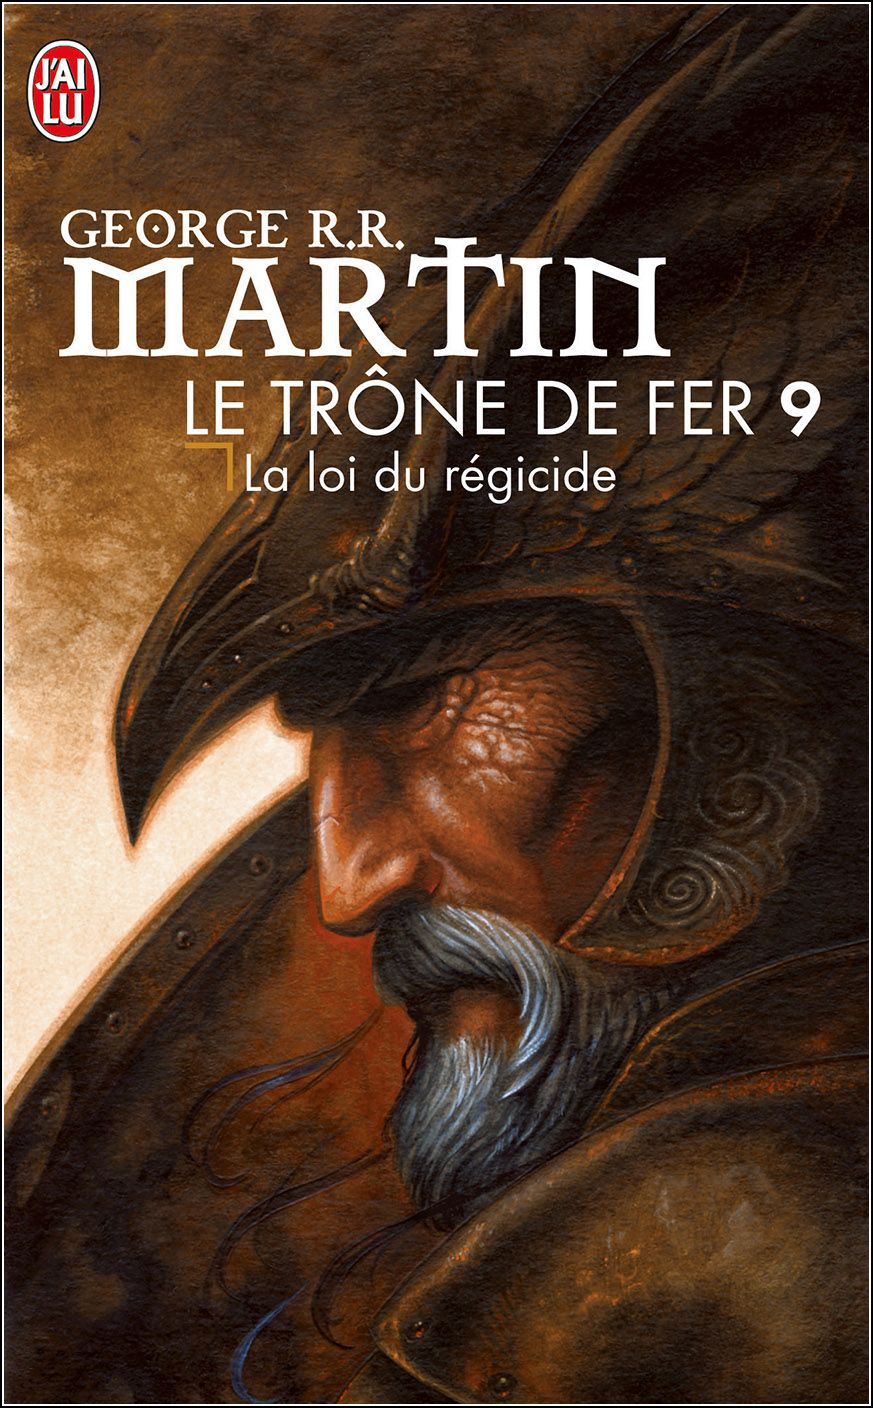 Le Trone De Fer Game Of Thrones By George R R Martin J Ai